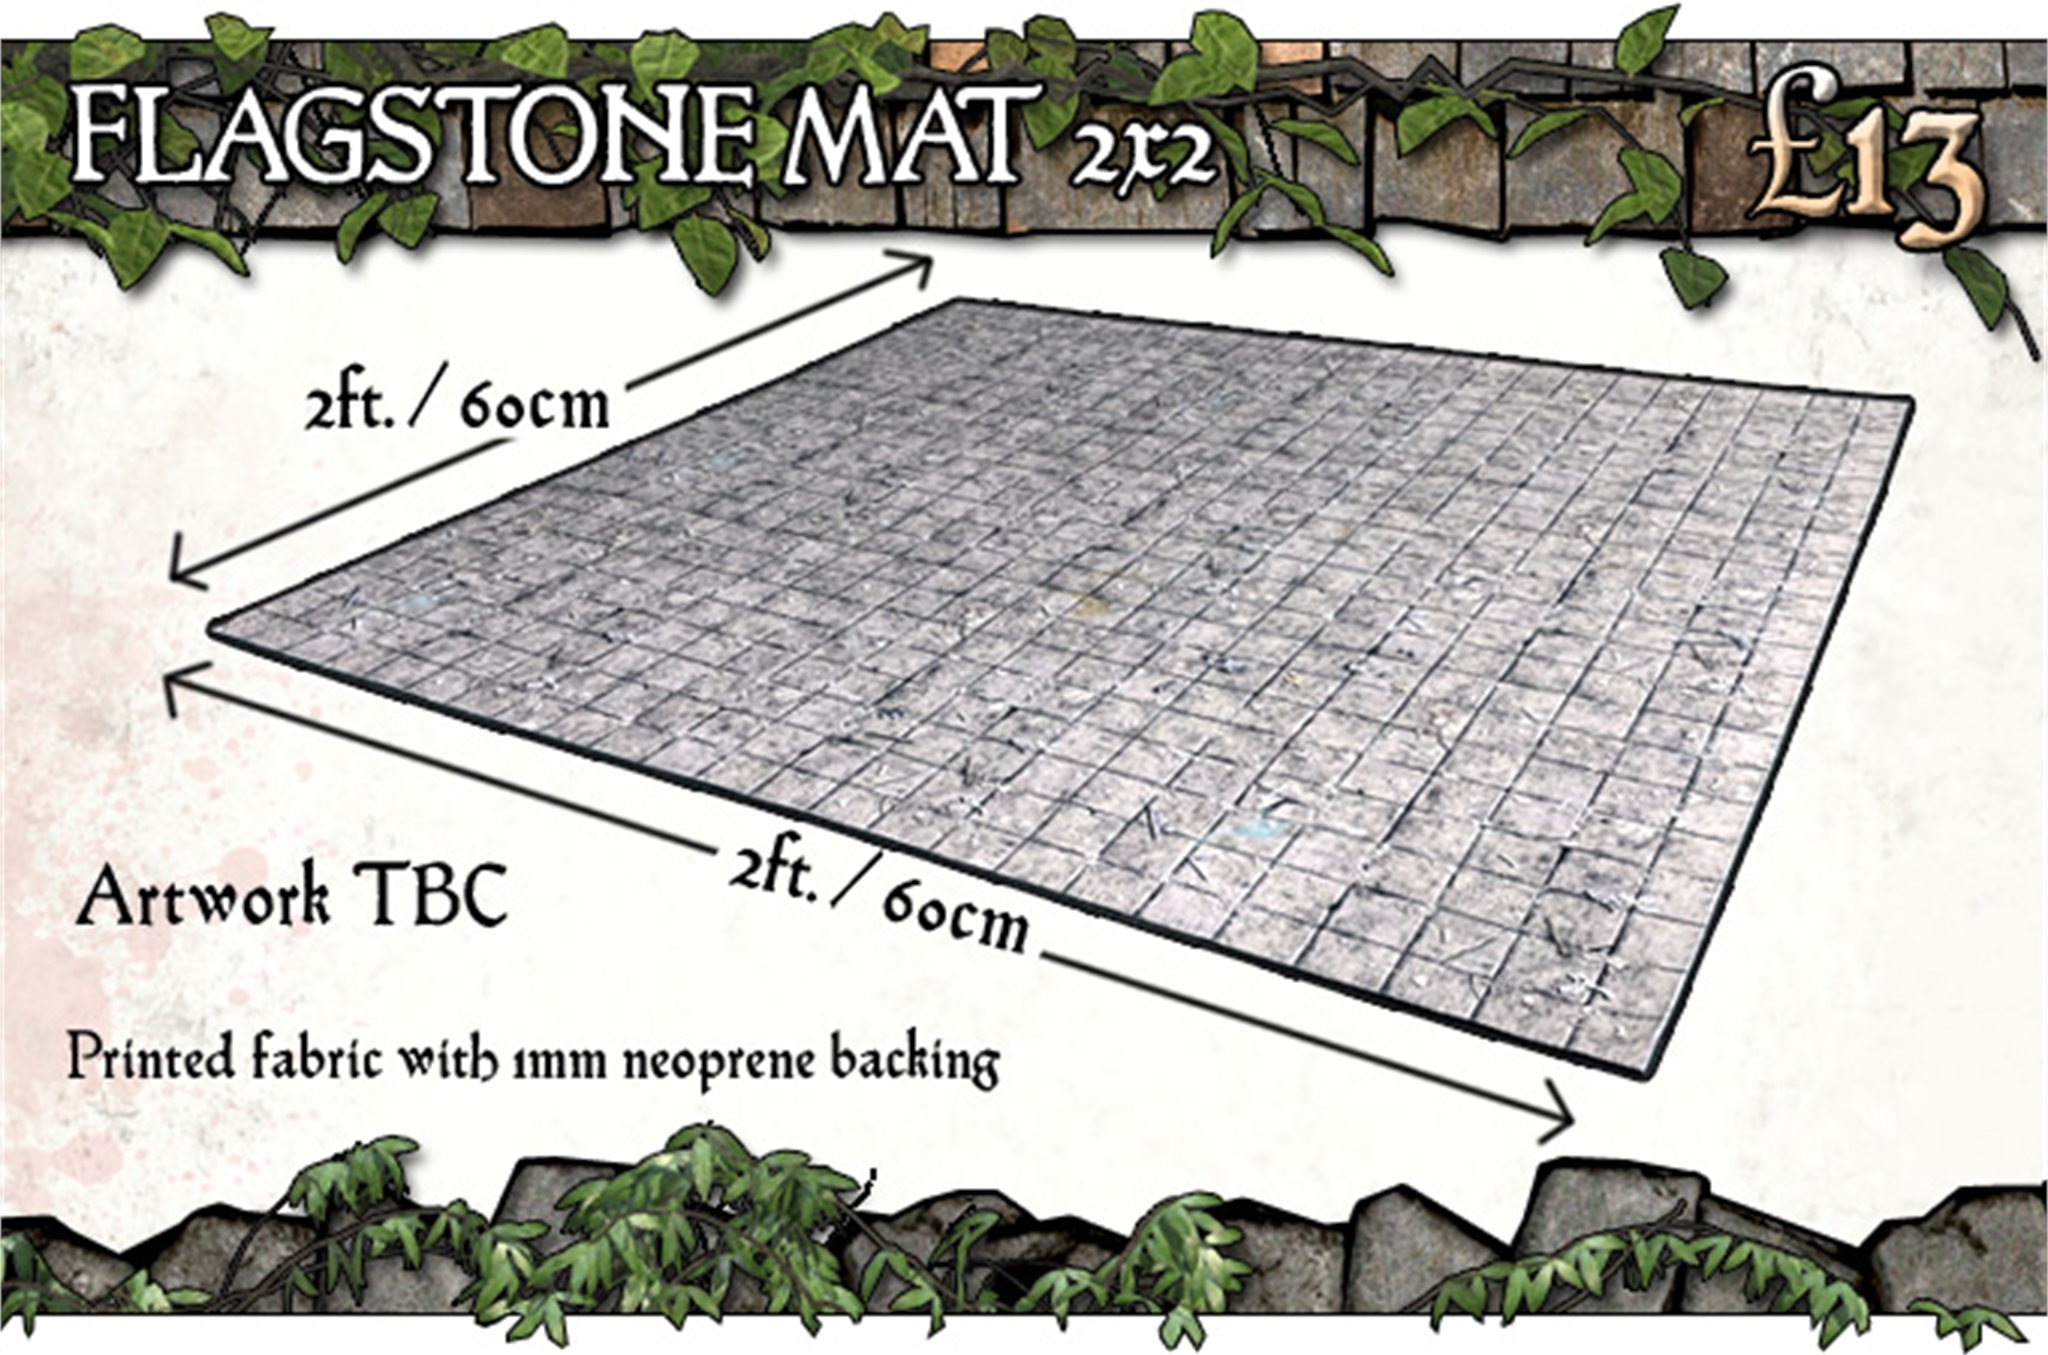 Battle Systems: Flagstone Floor Gaming Mat 2x2